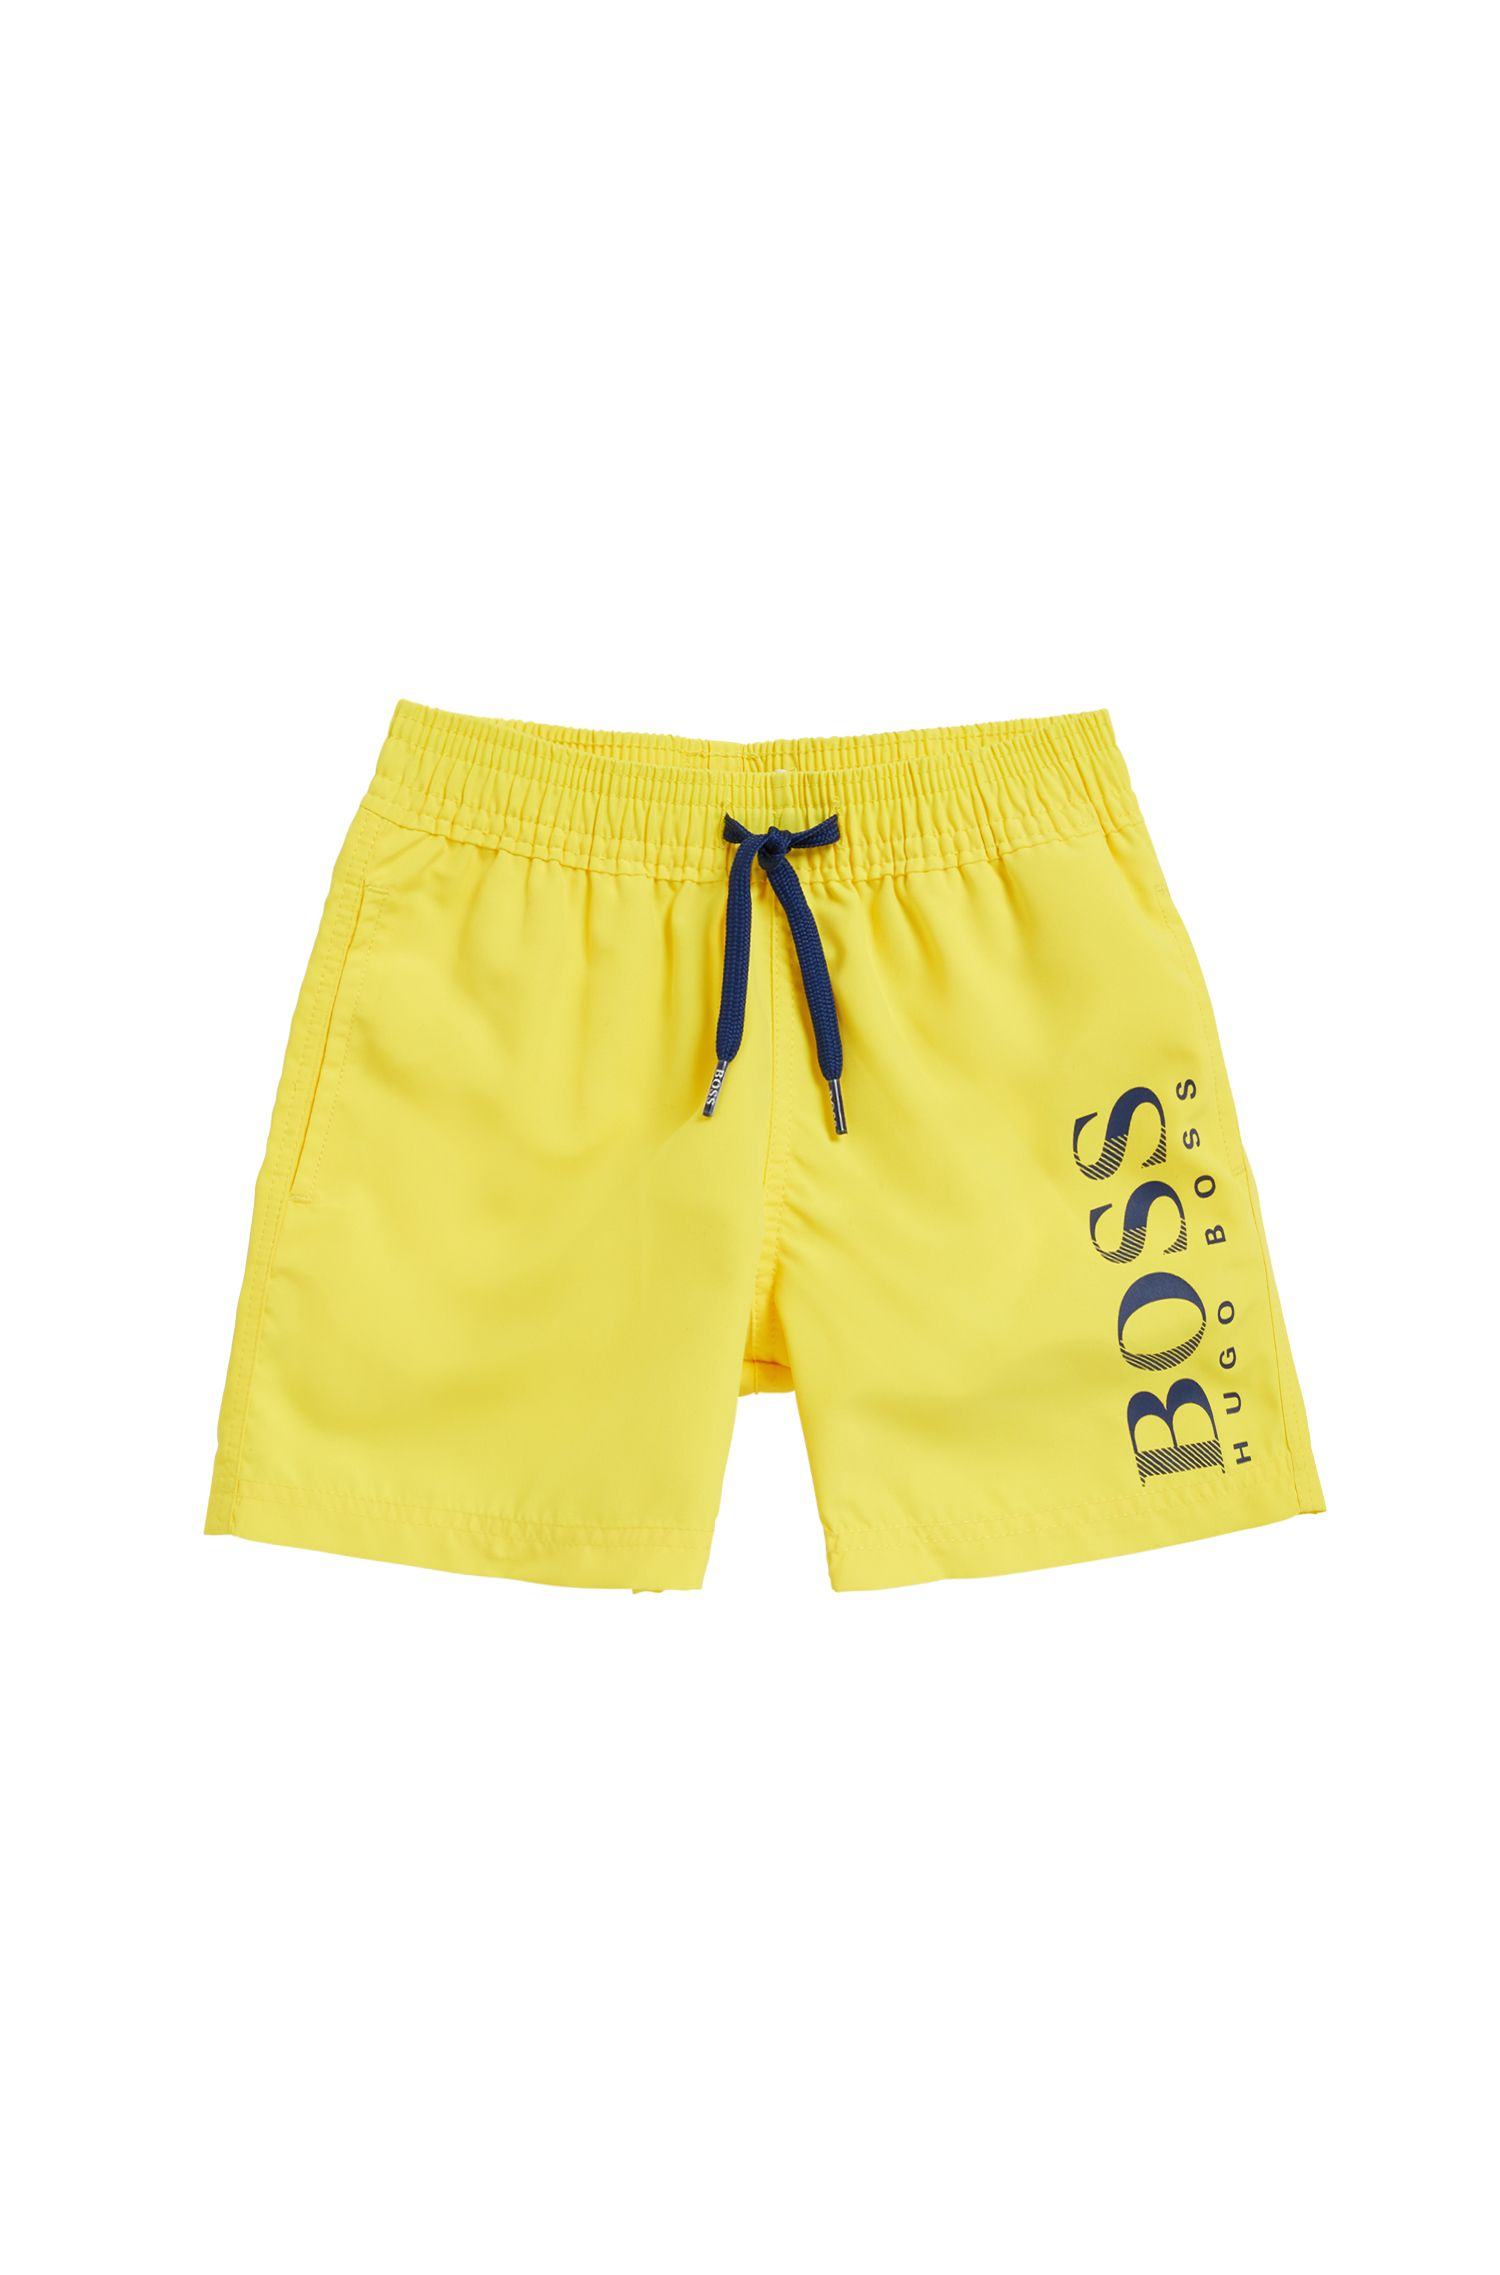 Kids' quick-dry swim shorts with logo print